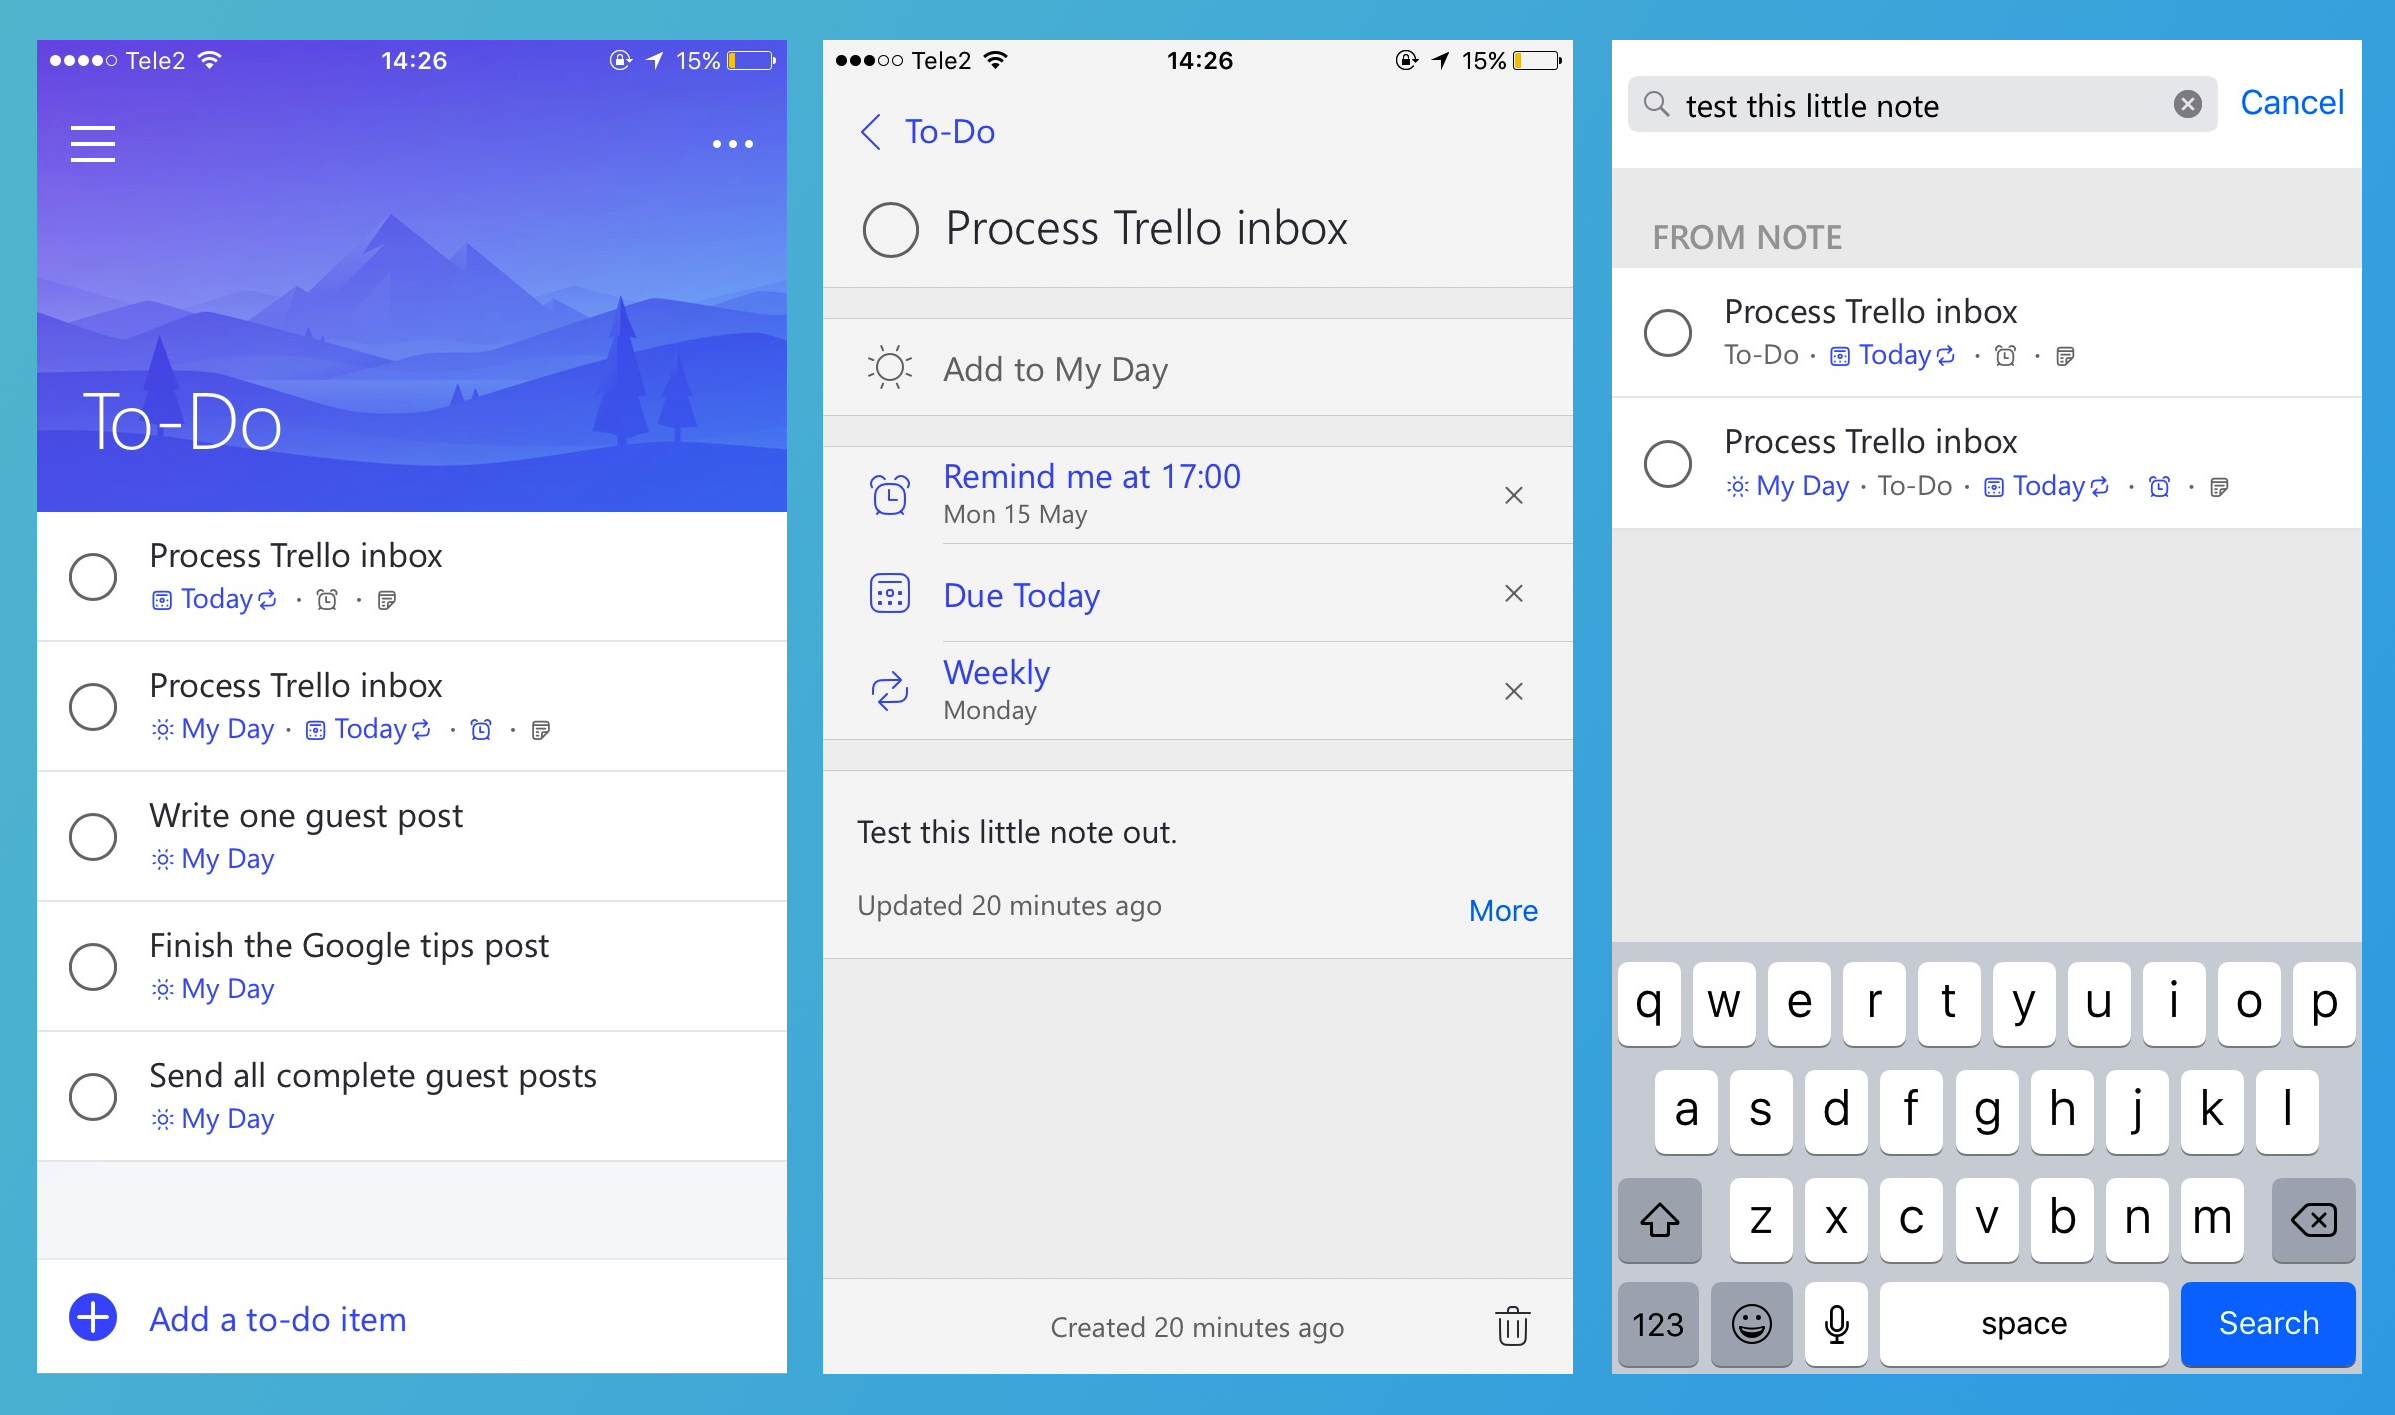 The Best To-Do List App? Todoist vs Wunderlist vs To-Do vs Any Do